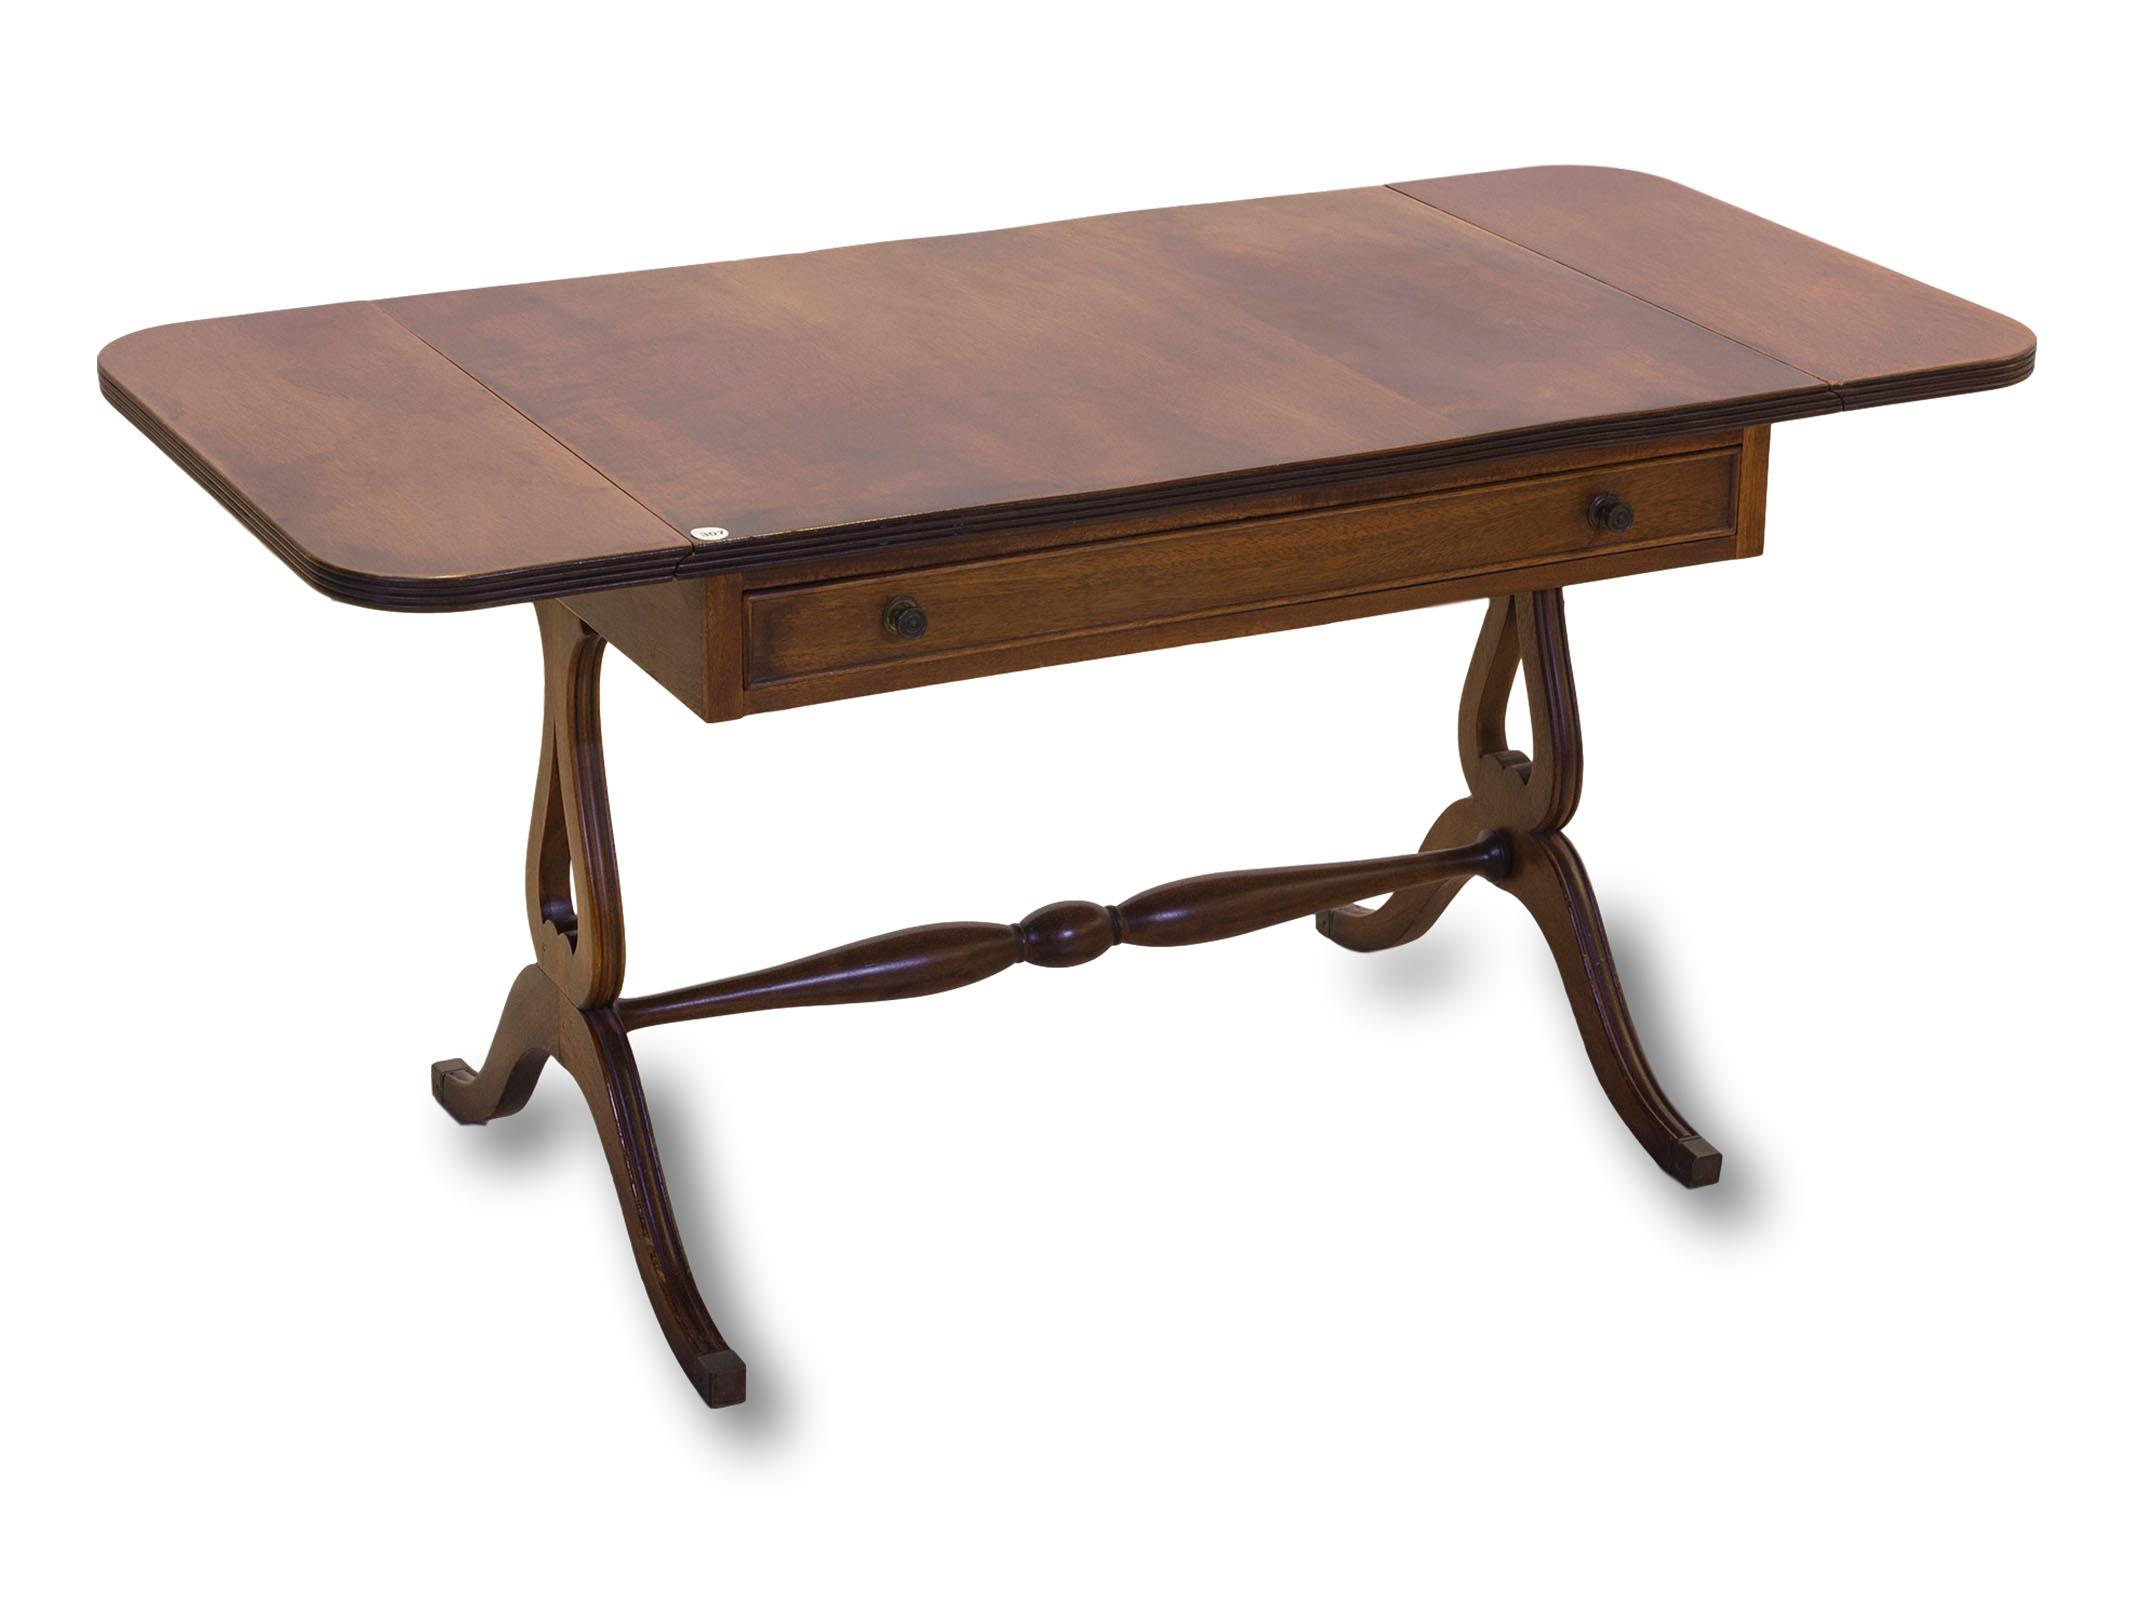 An Early 20th Century Mahogany Drop-side Table with Single Drawer, 53 x 110 x 52